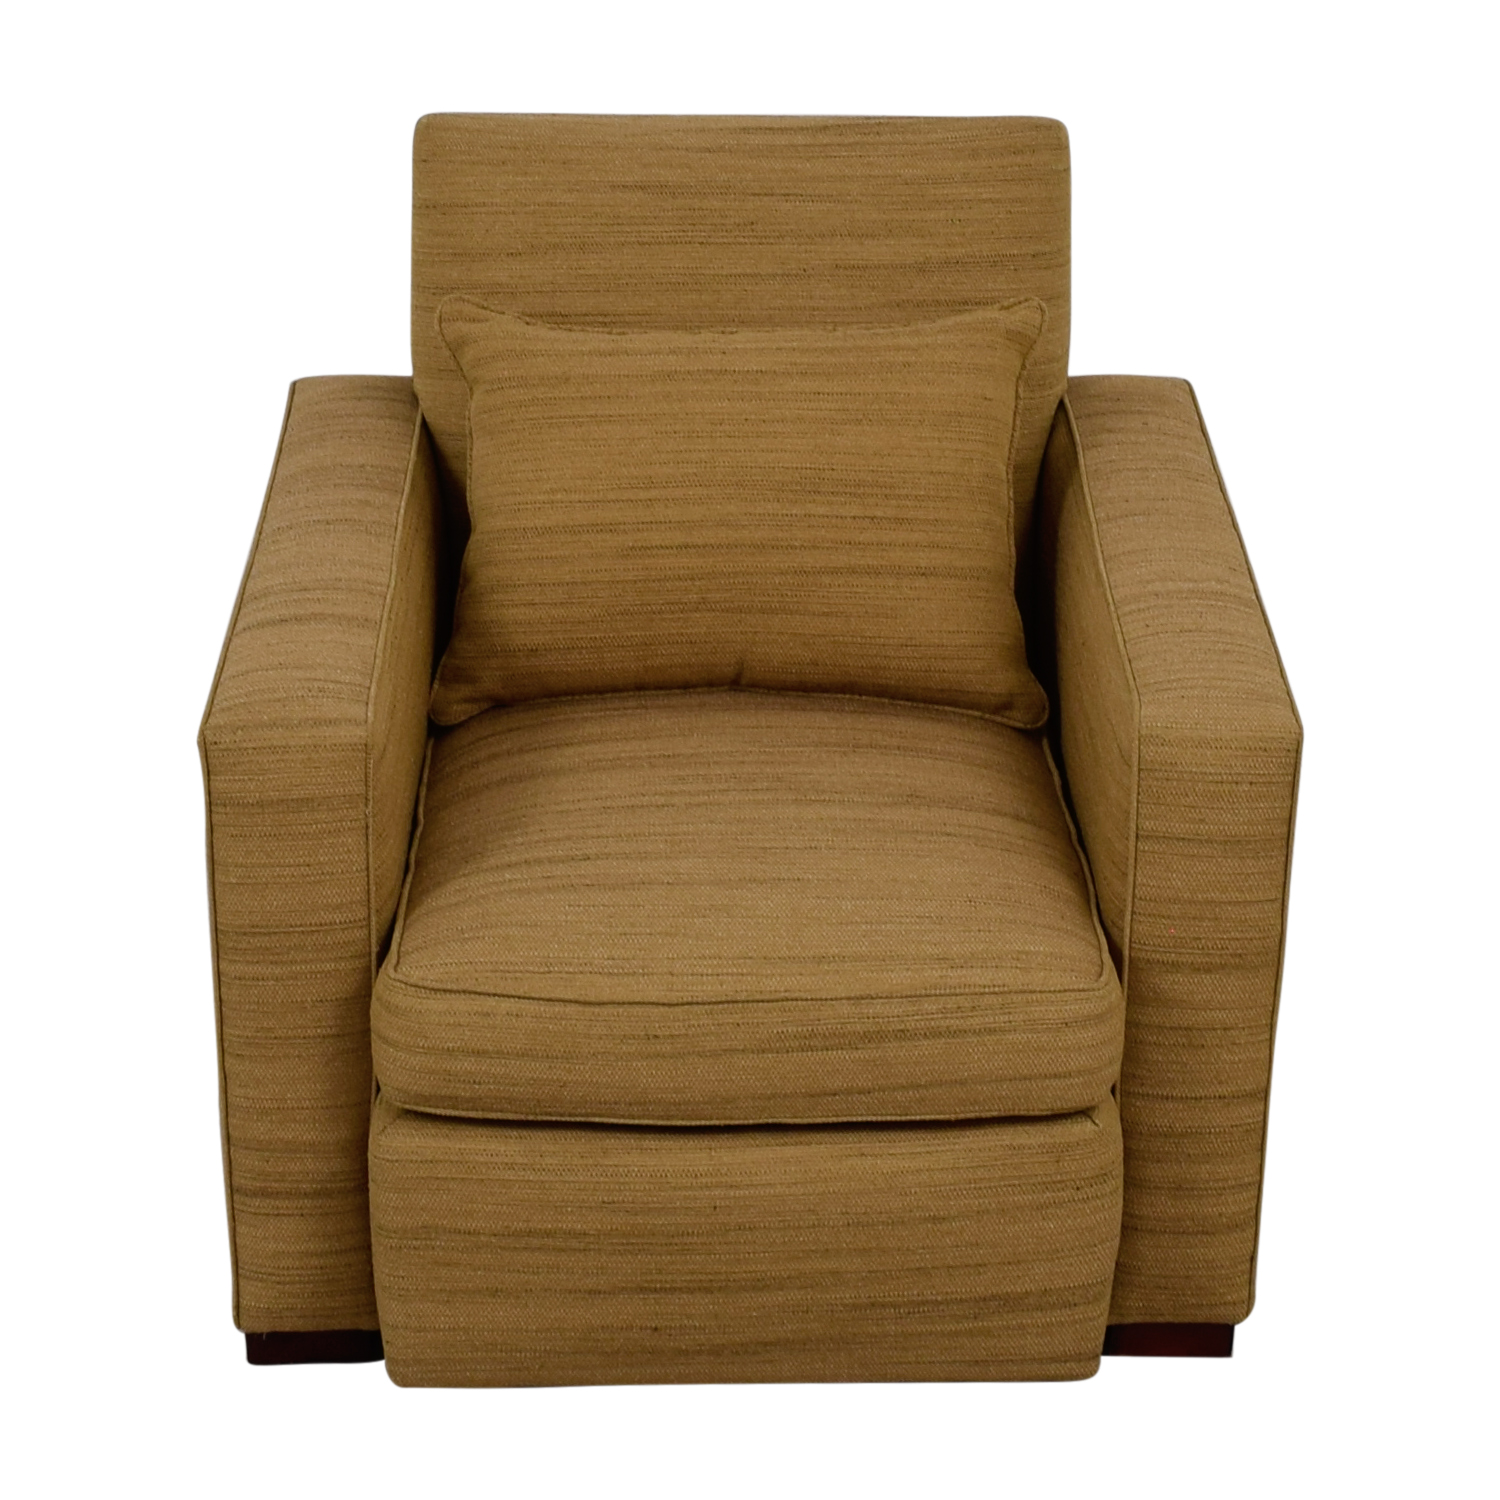 Hickory Chair Hickory Chair Classic Modern Club Chair on sale